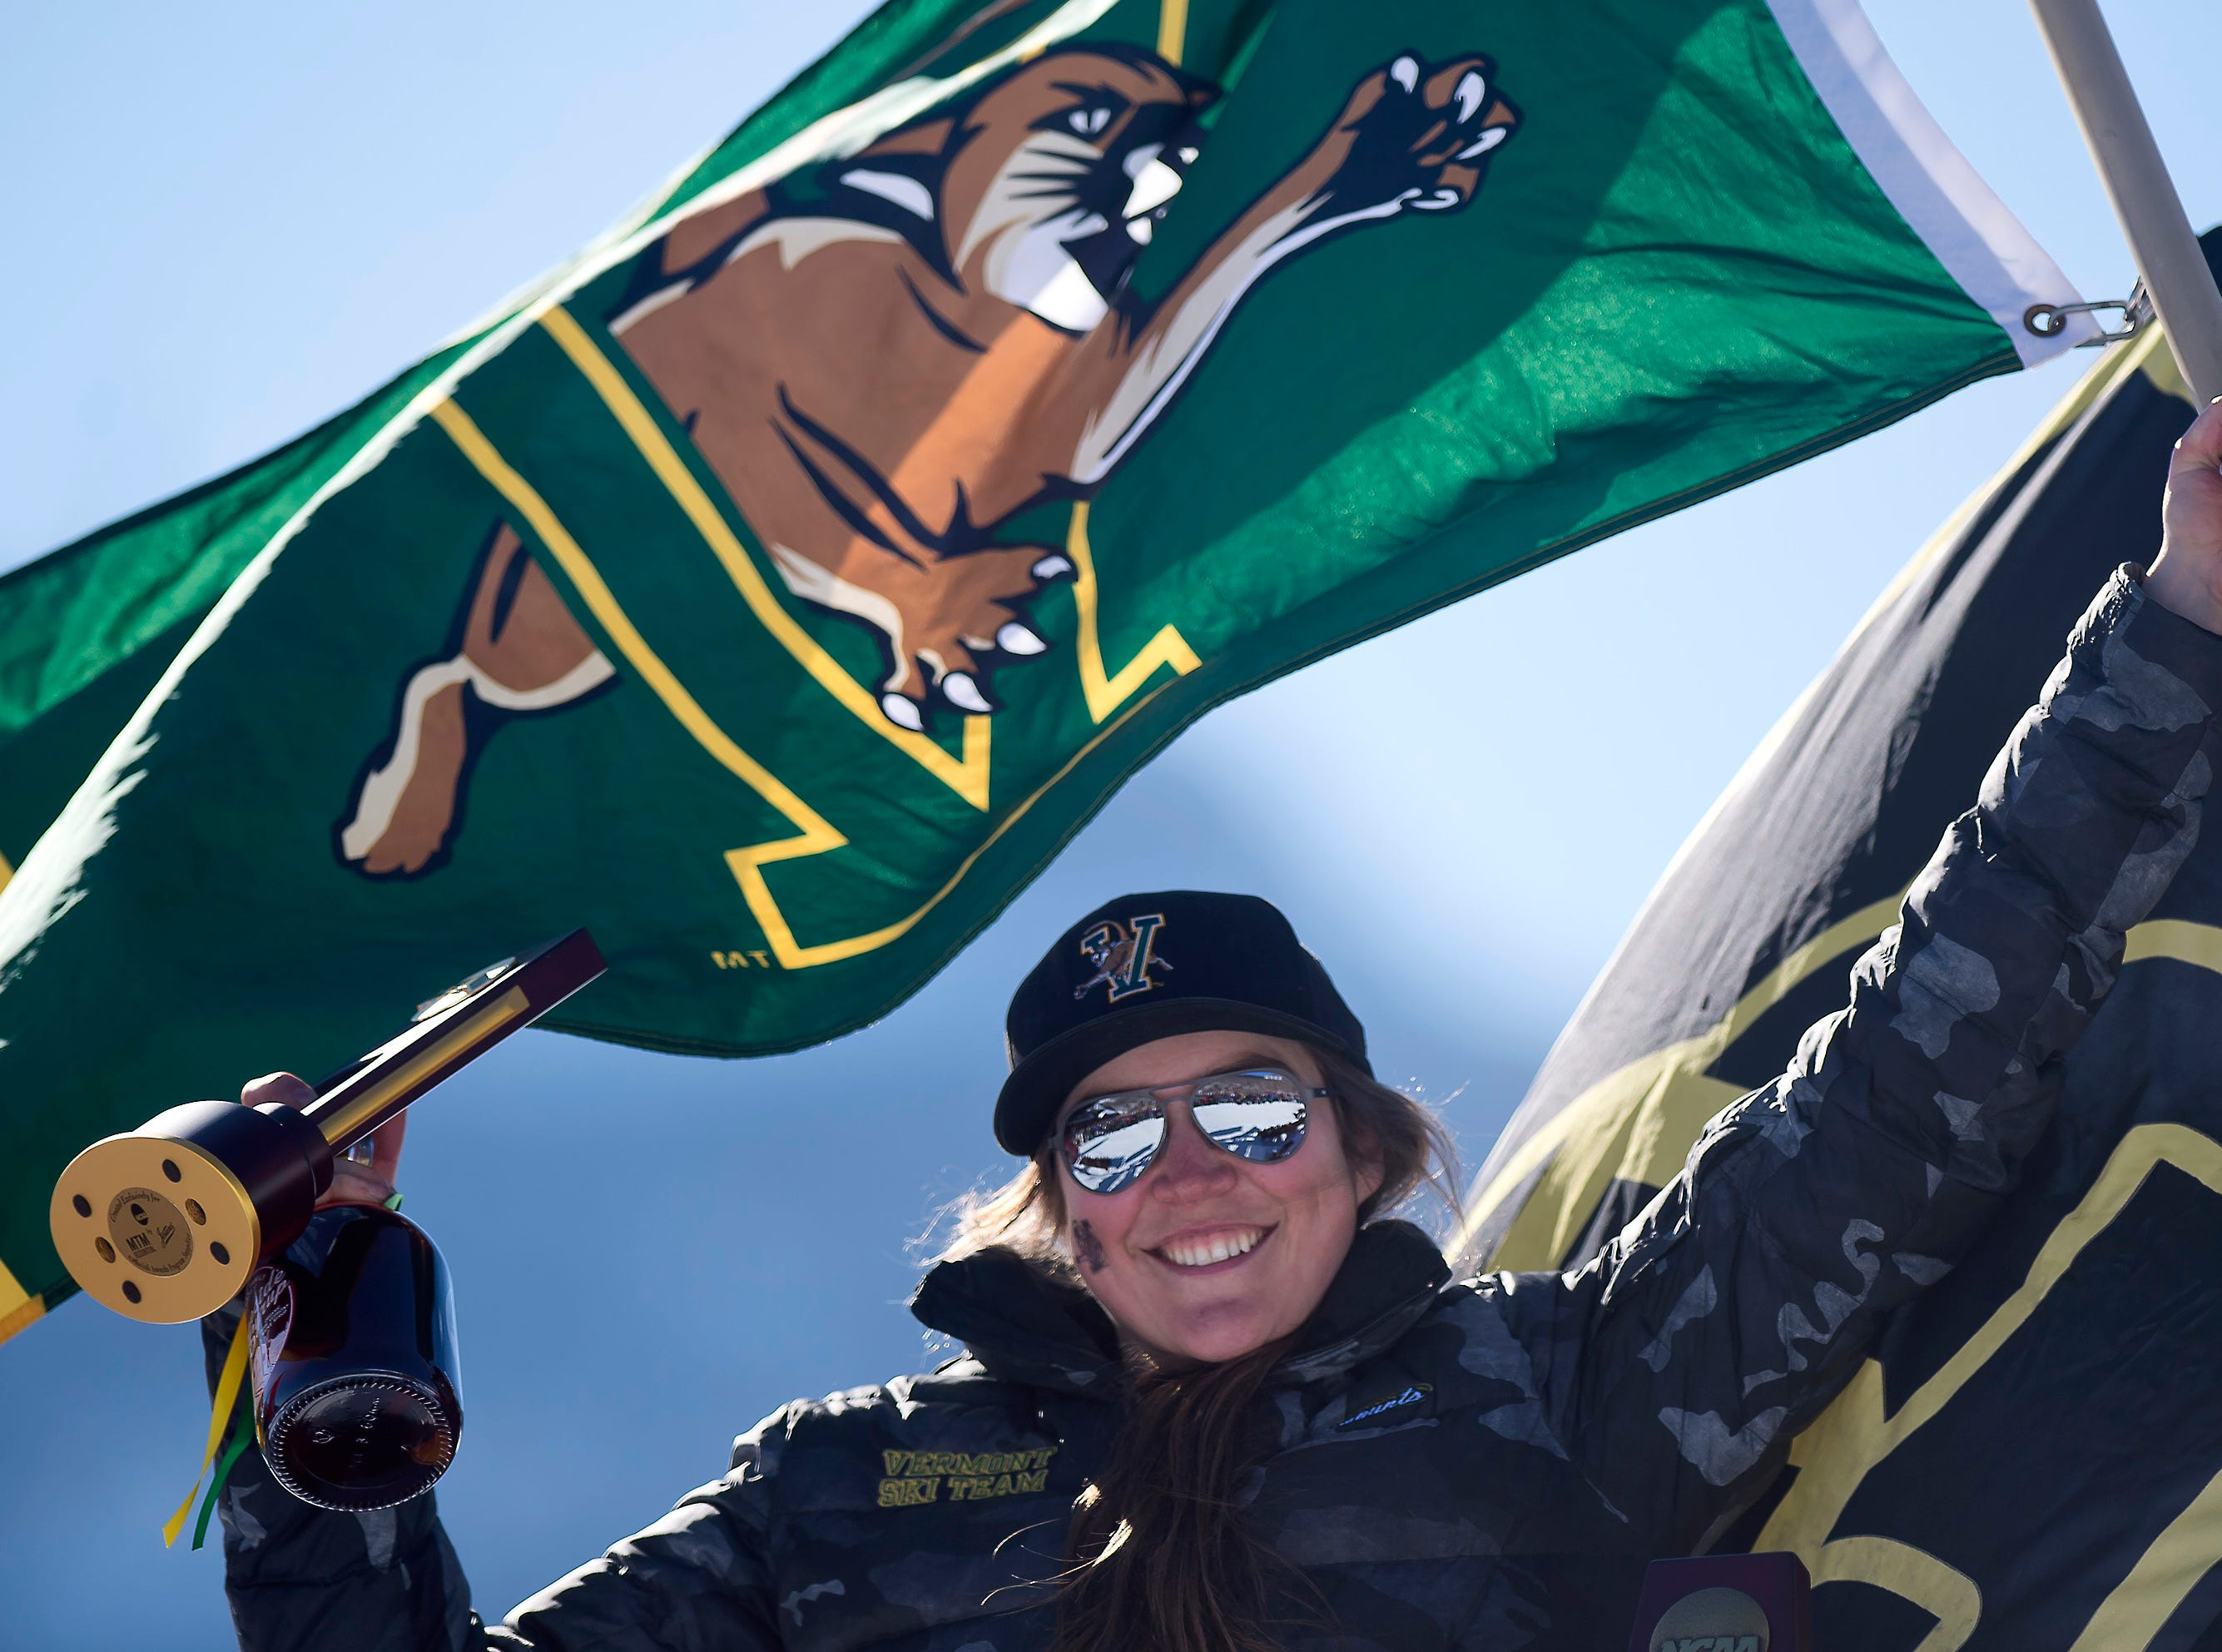 Vermont's Laurence St. Germain tops the podium after winning the NCAA women's slalom championship on Saturday at Stowe Mountain Resort.